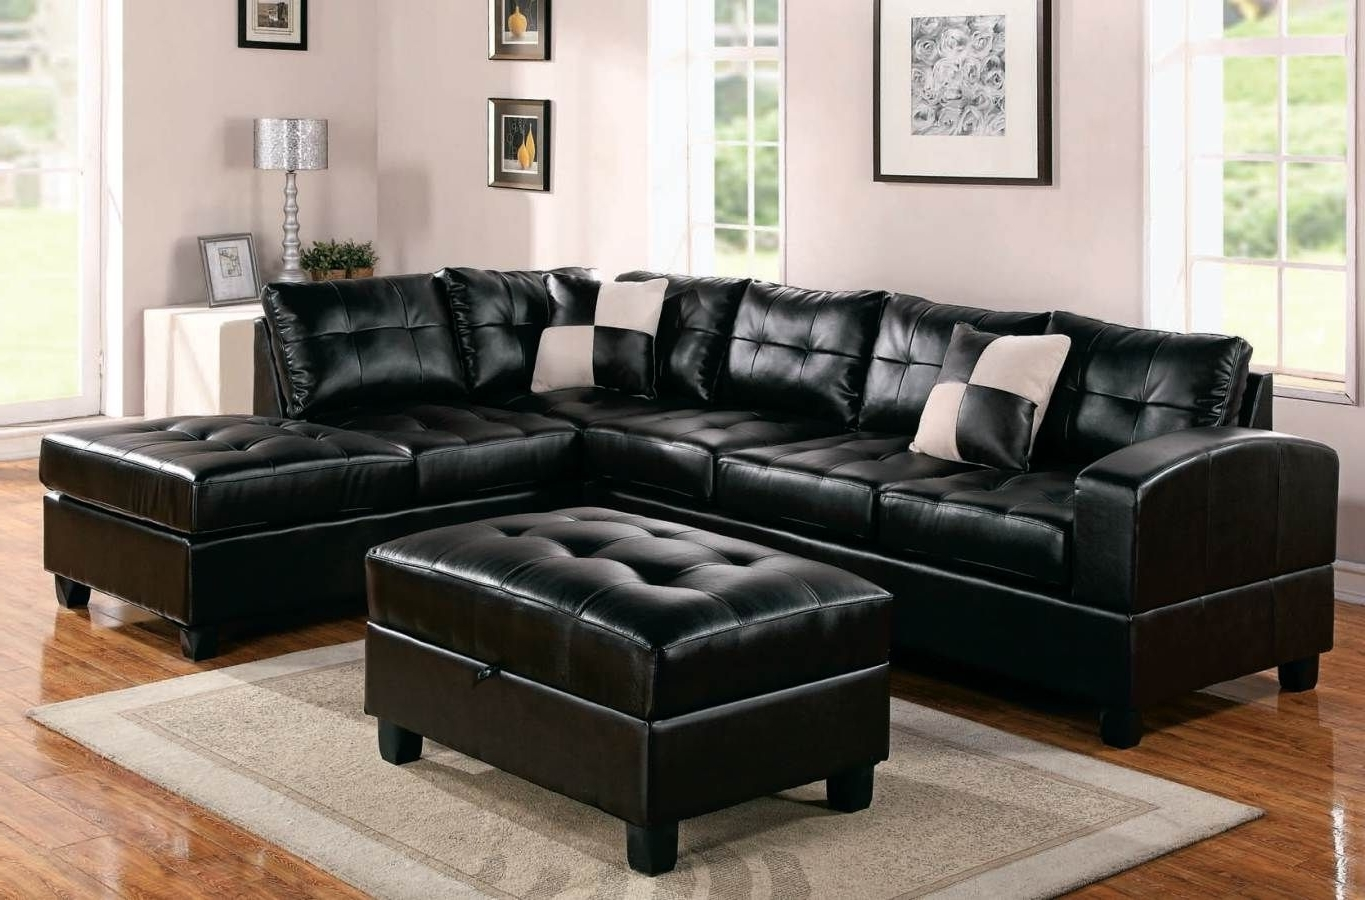 Family Room With Black Leather Sectionals With Ottoman (View 2 of 20)